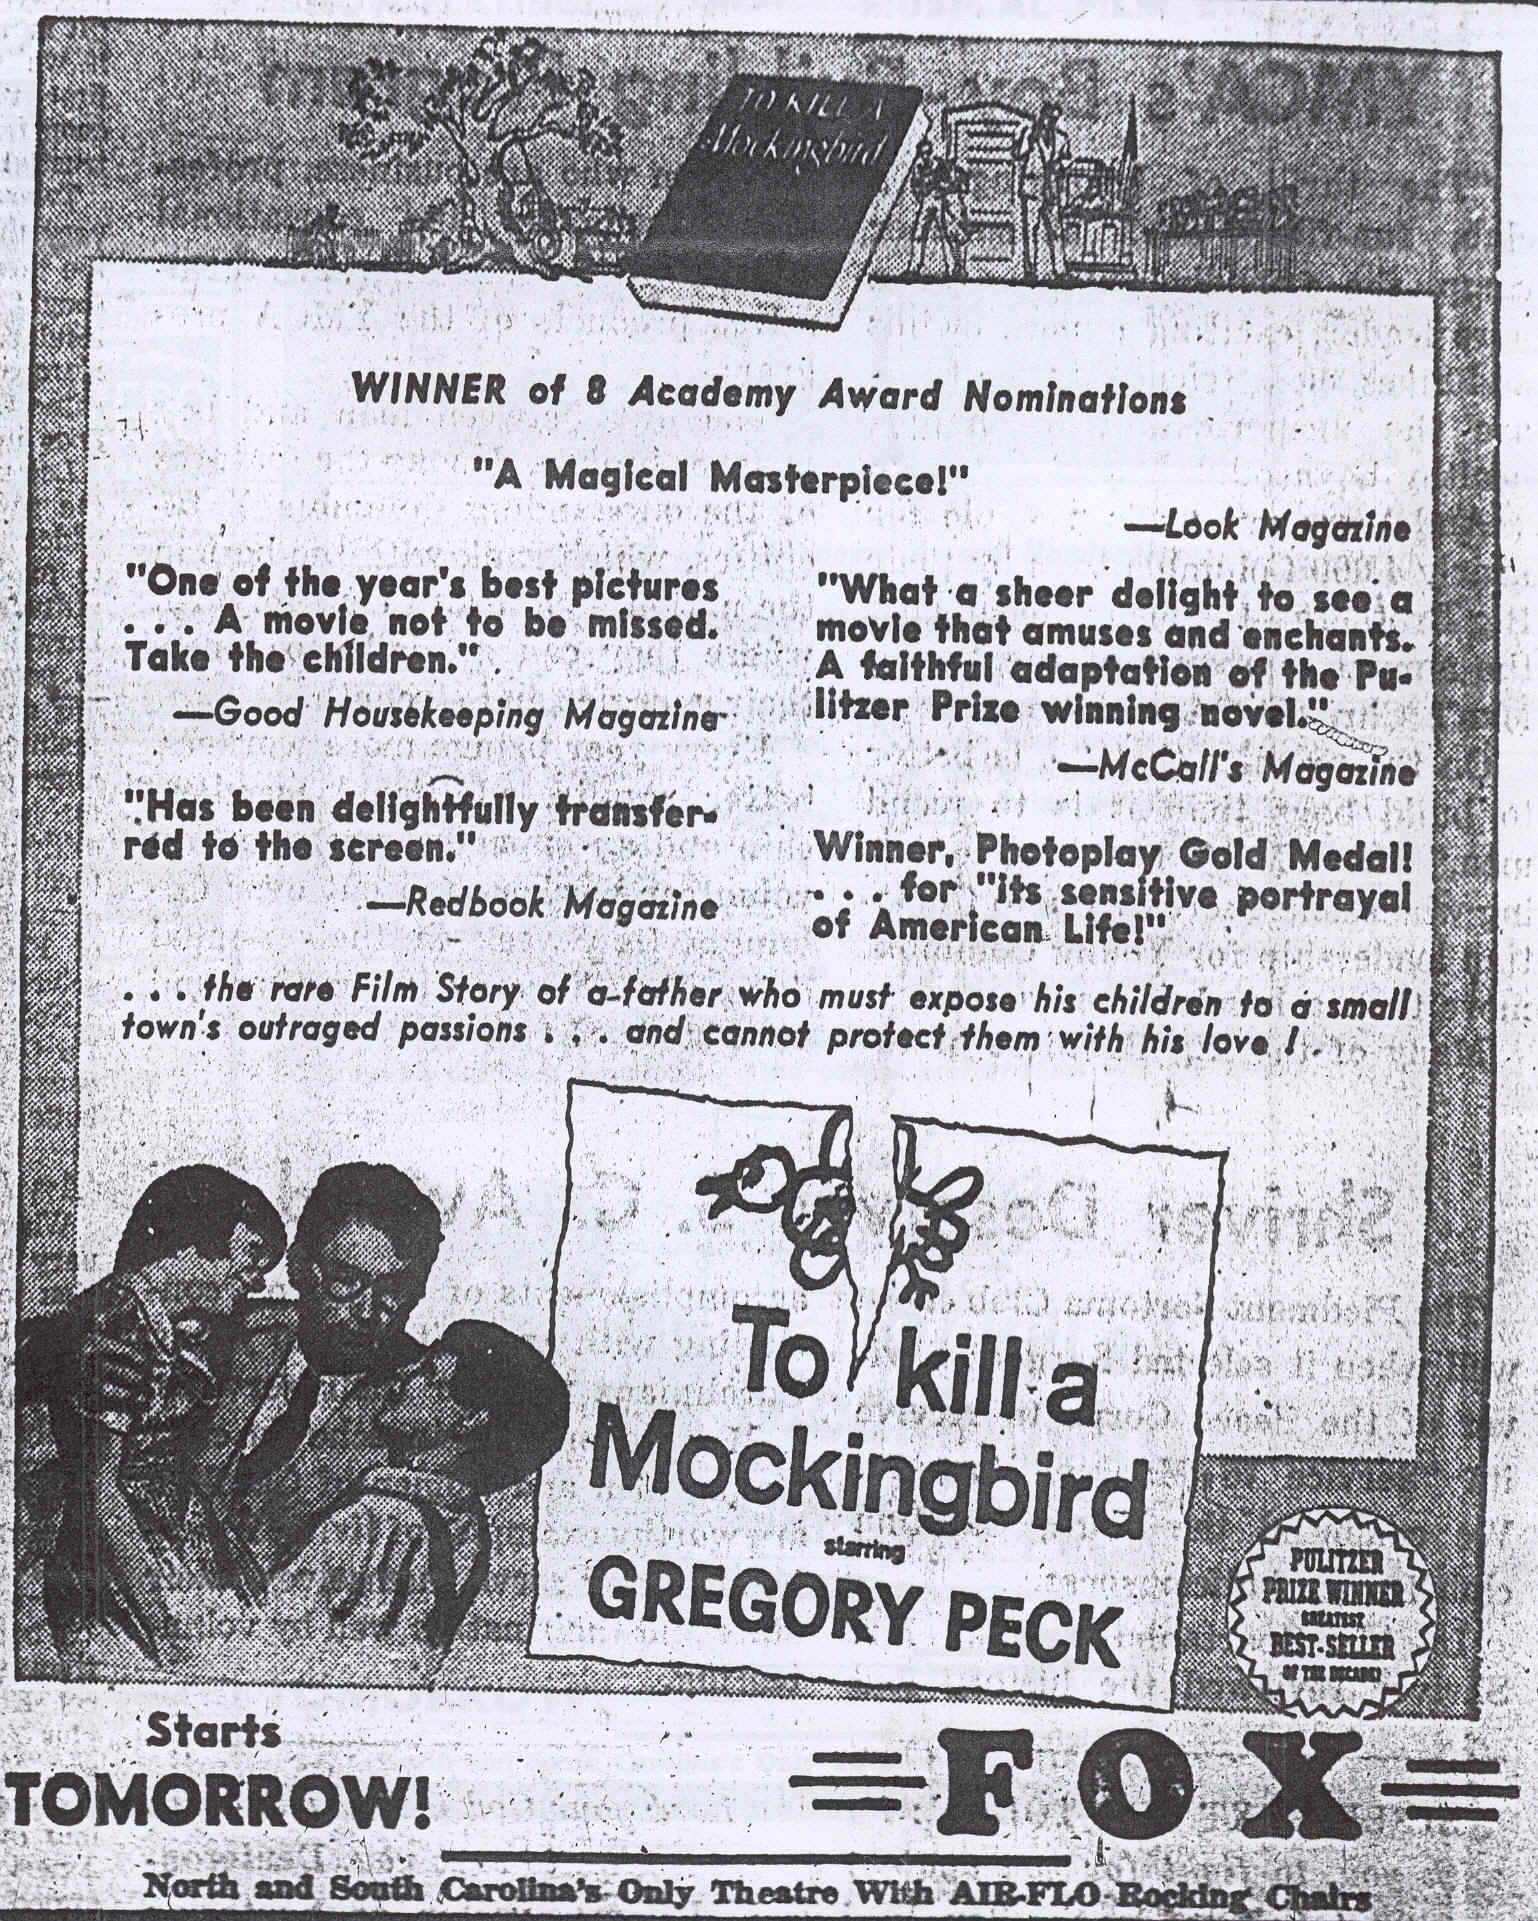 to kill a mockingbird original newspaper ads media literacy  to kill a mockingbird original newspaper ads media literacy clearinghouse